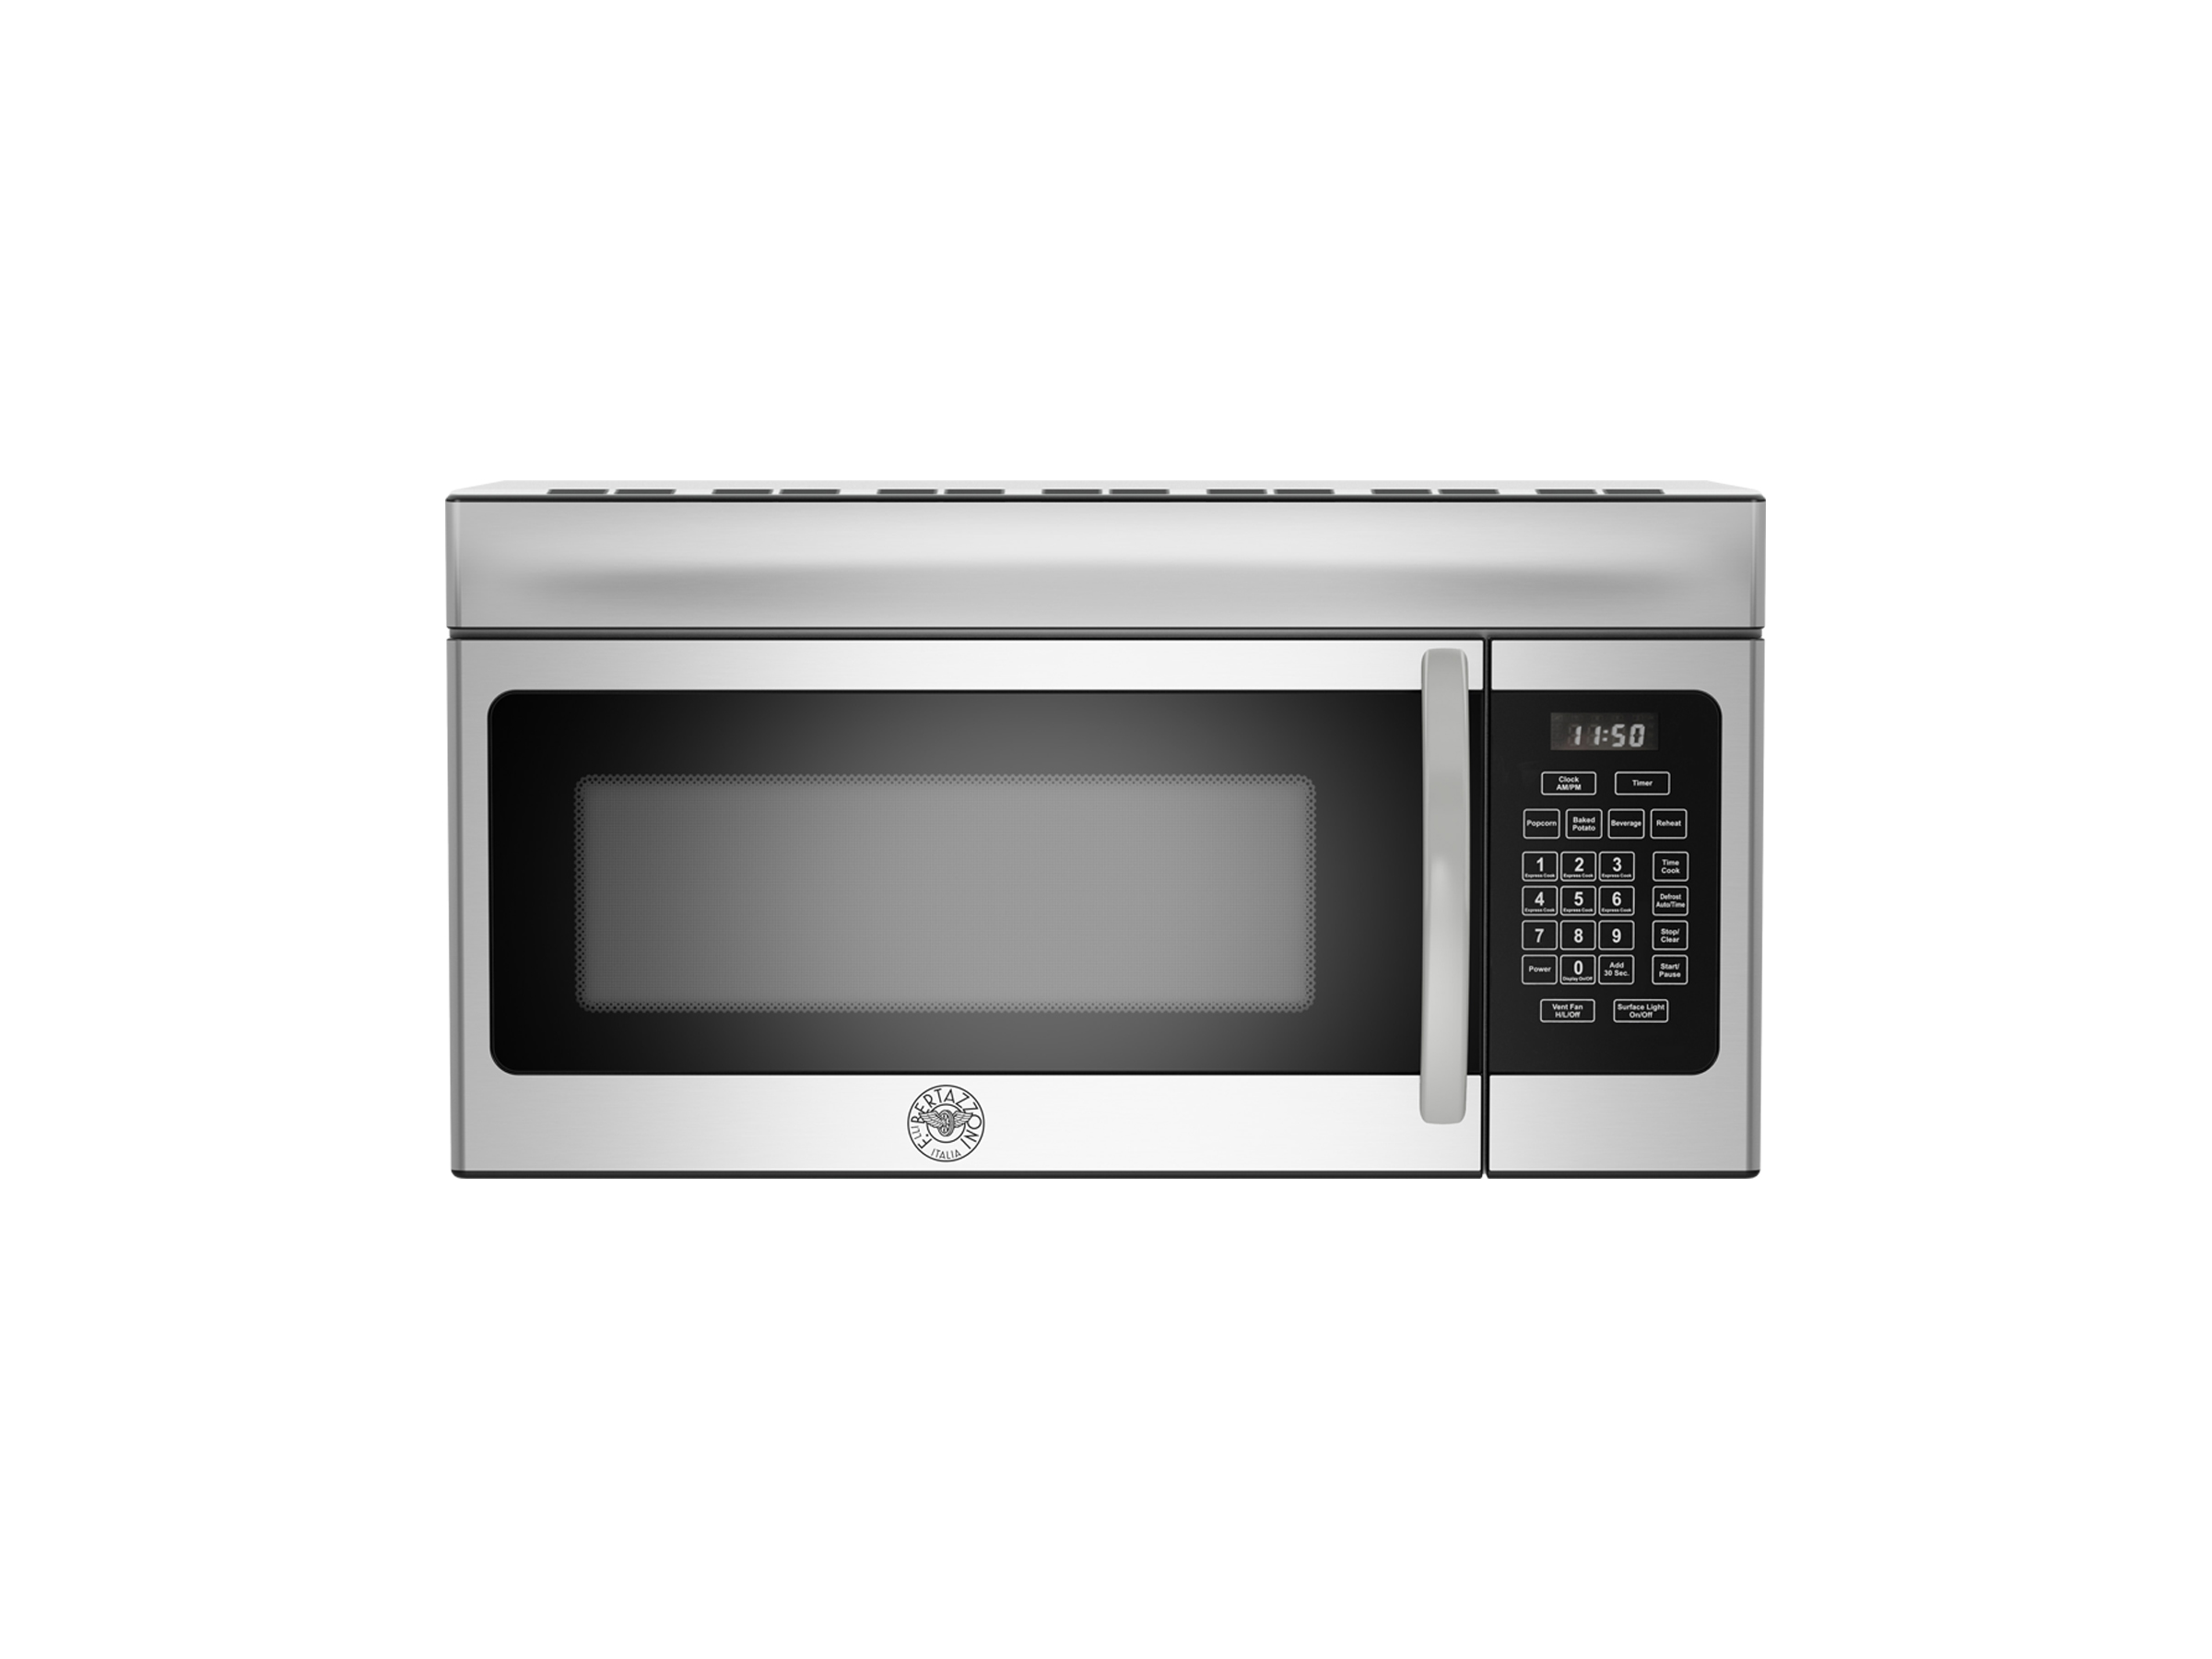 30 Over The Range Convection Microwave 300 CFM | Bertazzoni - Stainless